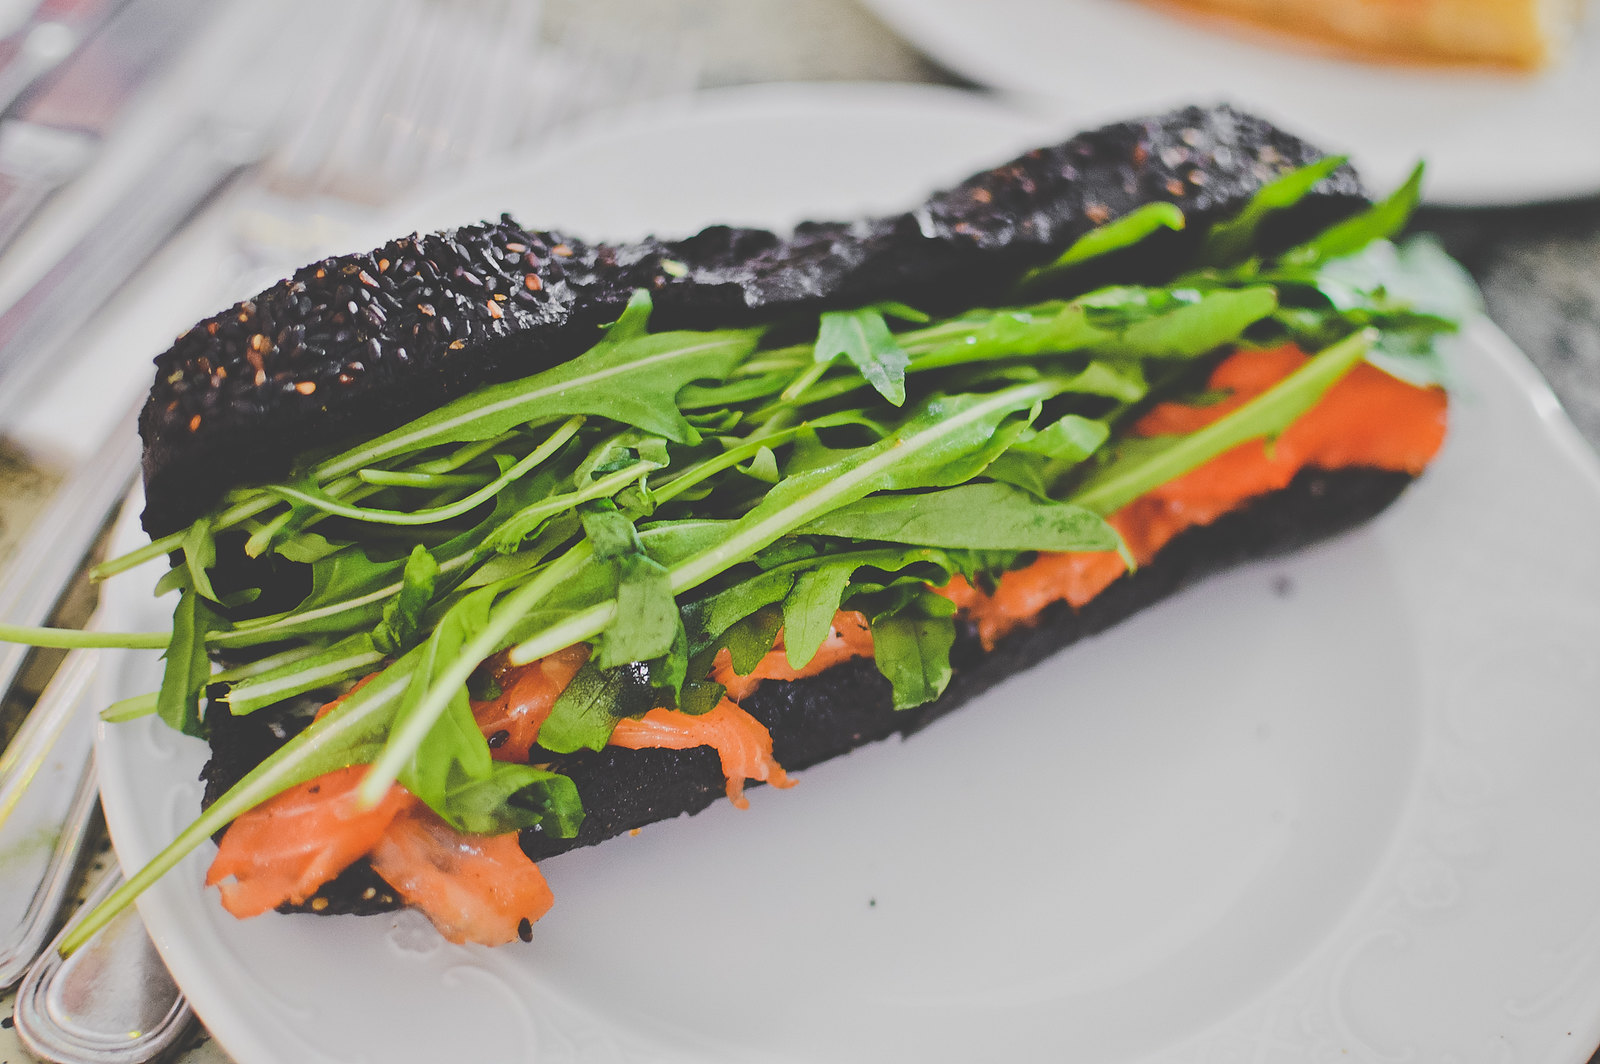 Tiong Bahru Bakery Squid Ink Sandwich